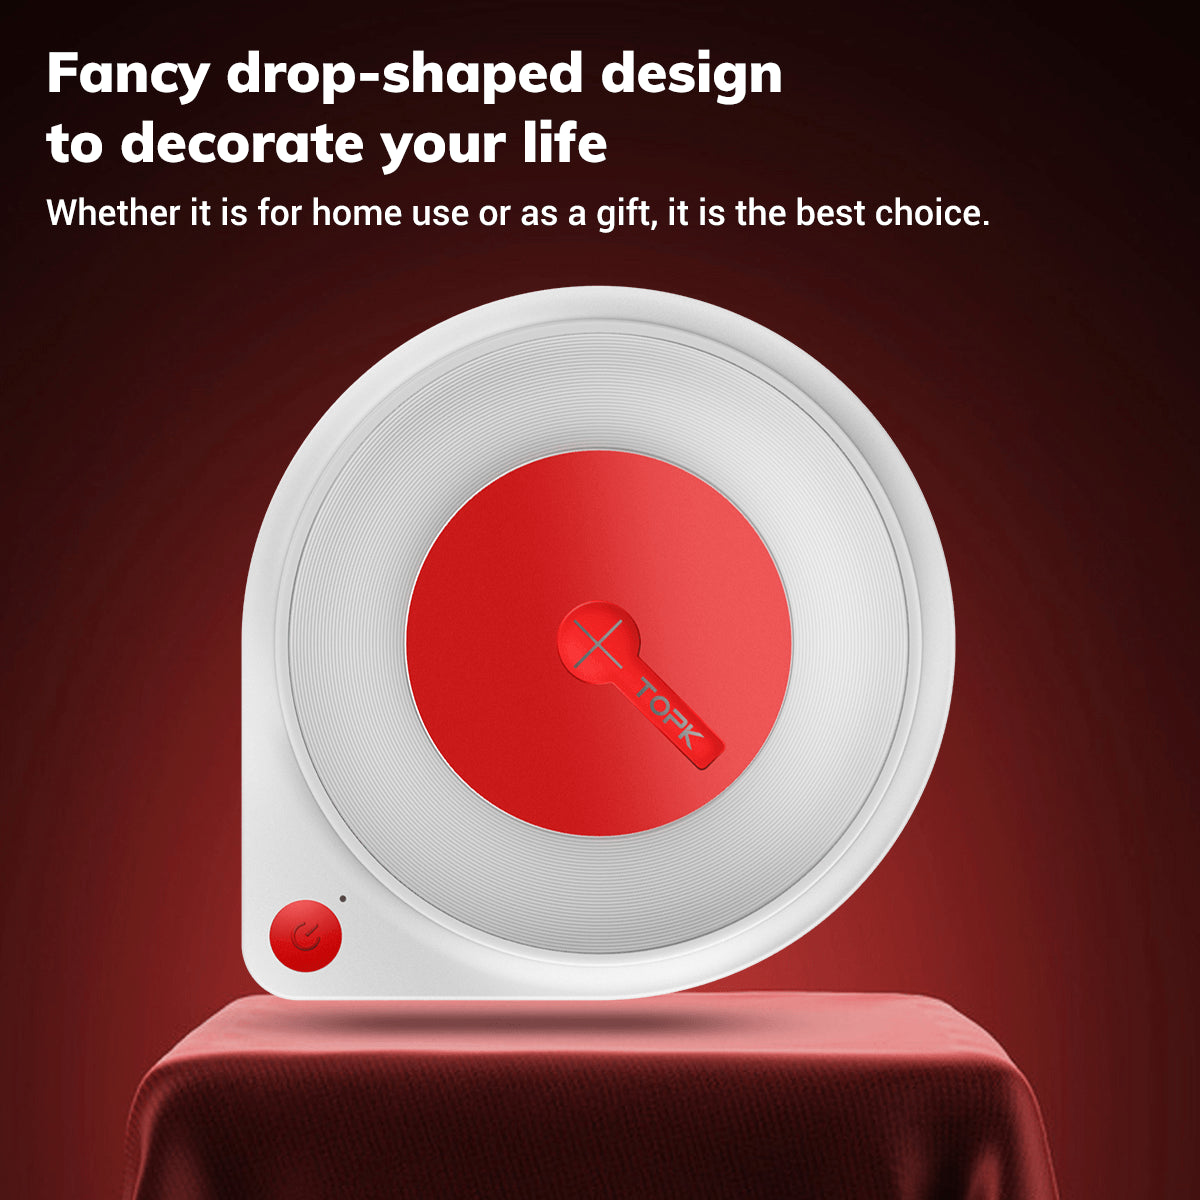 Fast Wireless Charger 10W for iPhone 11 XR X Max Pro 8 Plus Samsung S10 S9 S8 Pic8